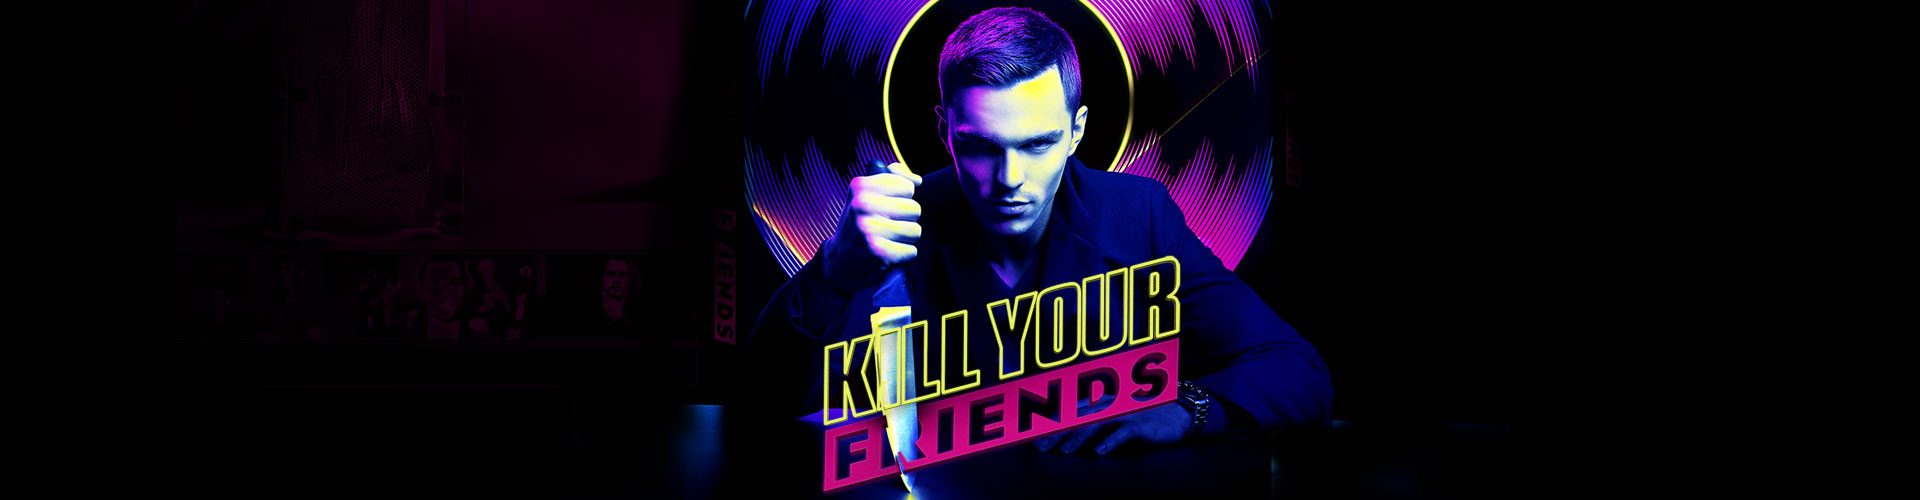 Kill Your Friends – available now on Virgin Movies